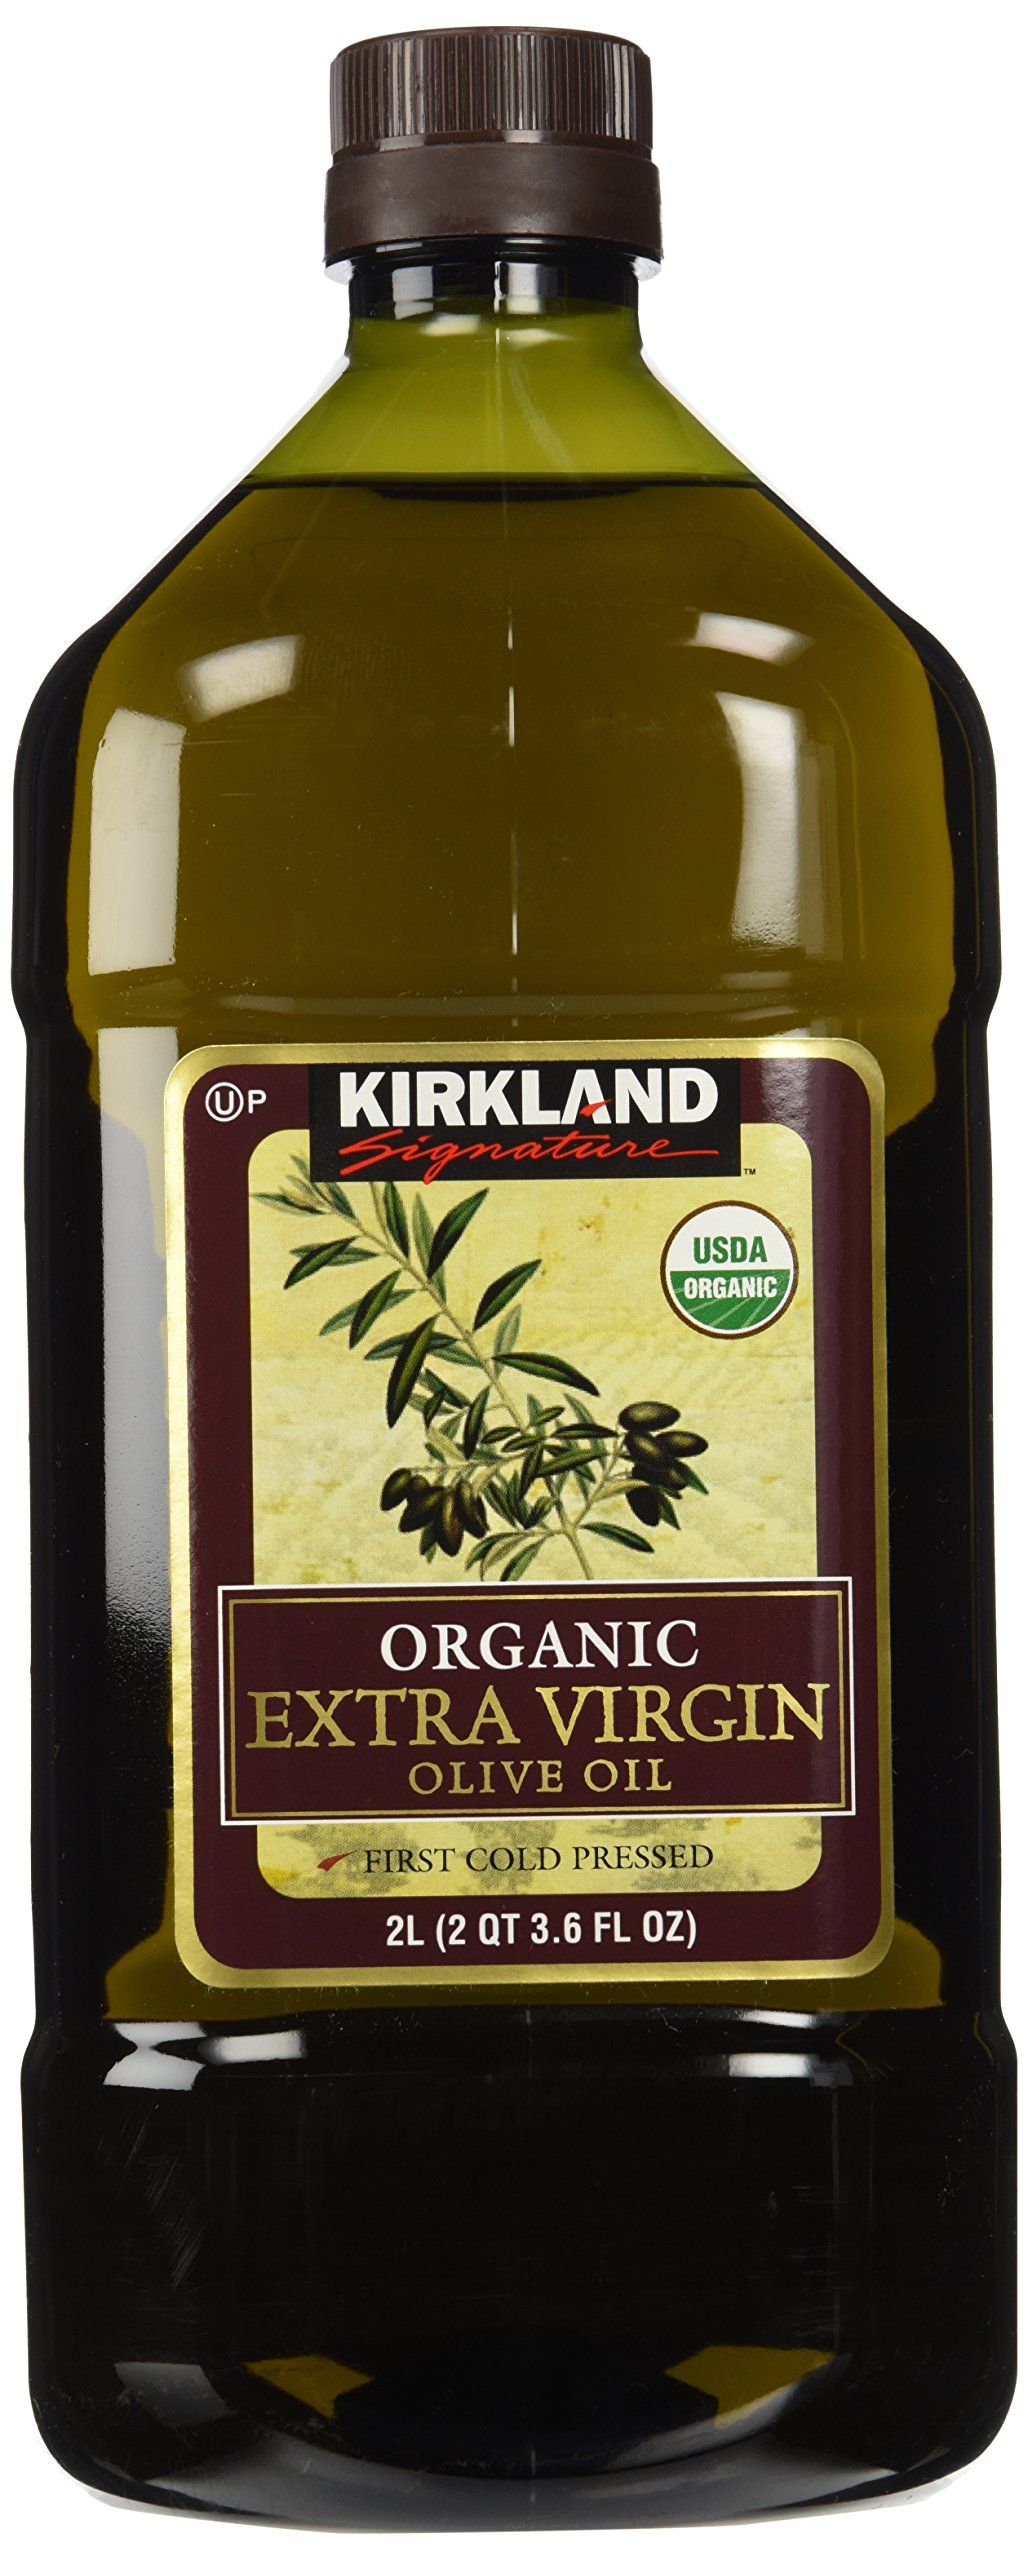 Kirkland Signature Organic Extra Virgin Olive Oil, 2L Organic Extra Virgin Olive Oil 2 Liter Plastic Bottle First Cold Pressed USDA Organic Kosher.